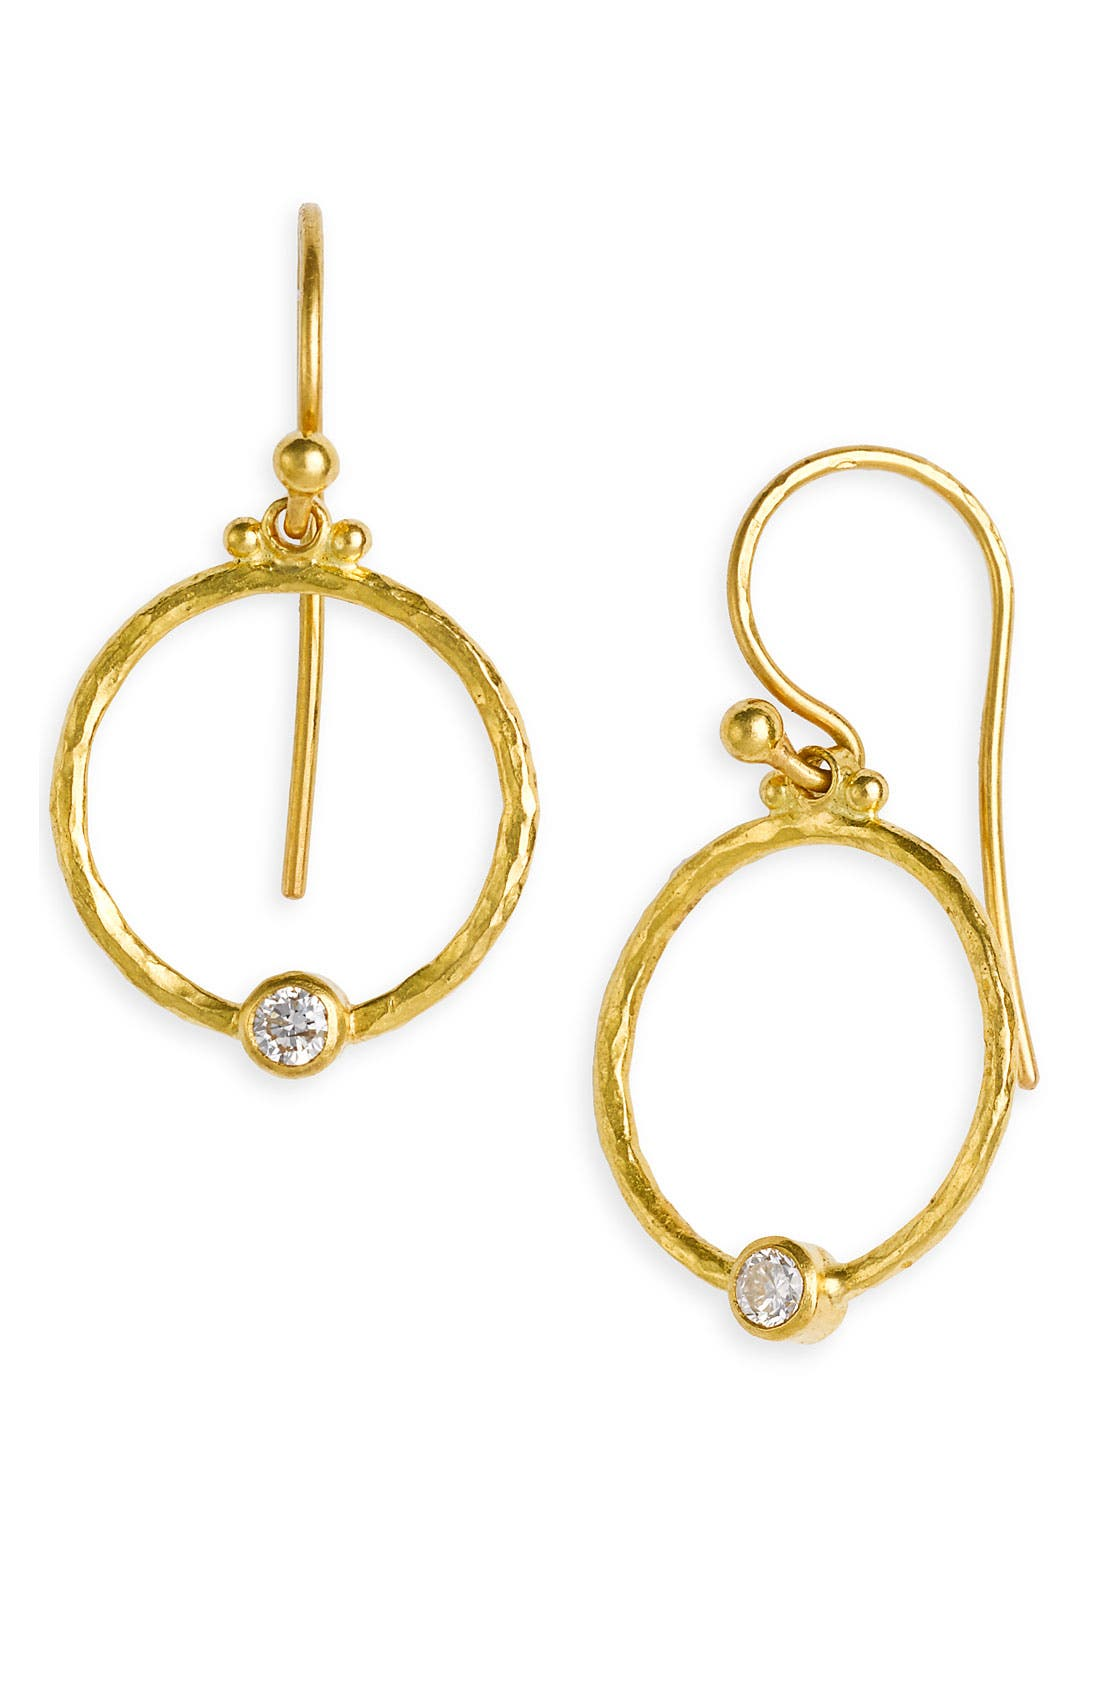 Alternate Image 1 Selected - Gurhan 'Clover' Diamond Accent Hoop Earrings